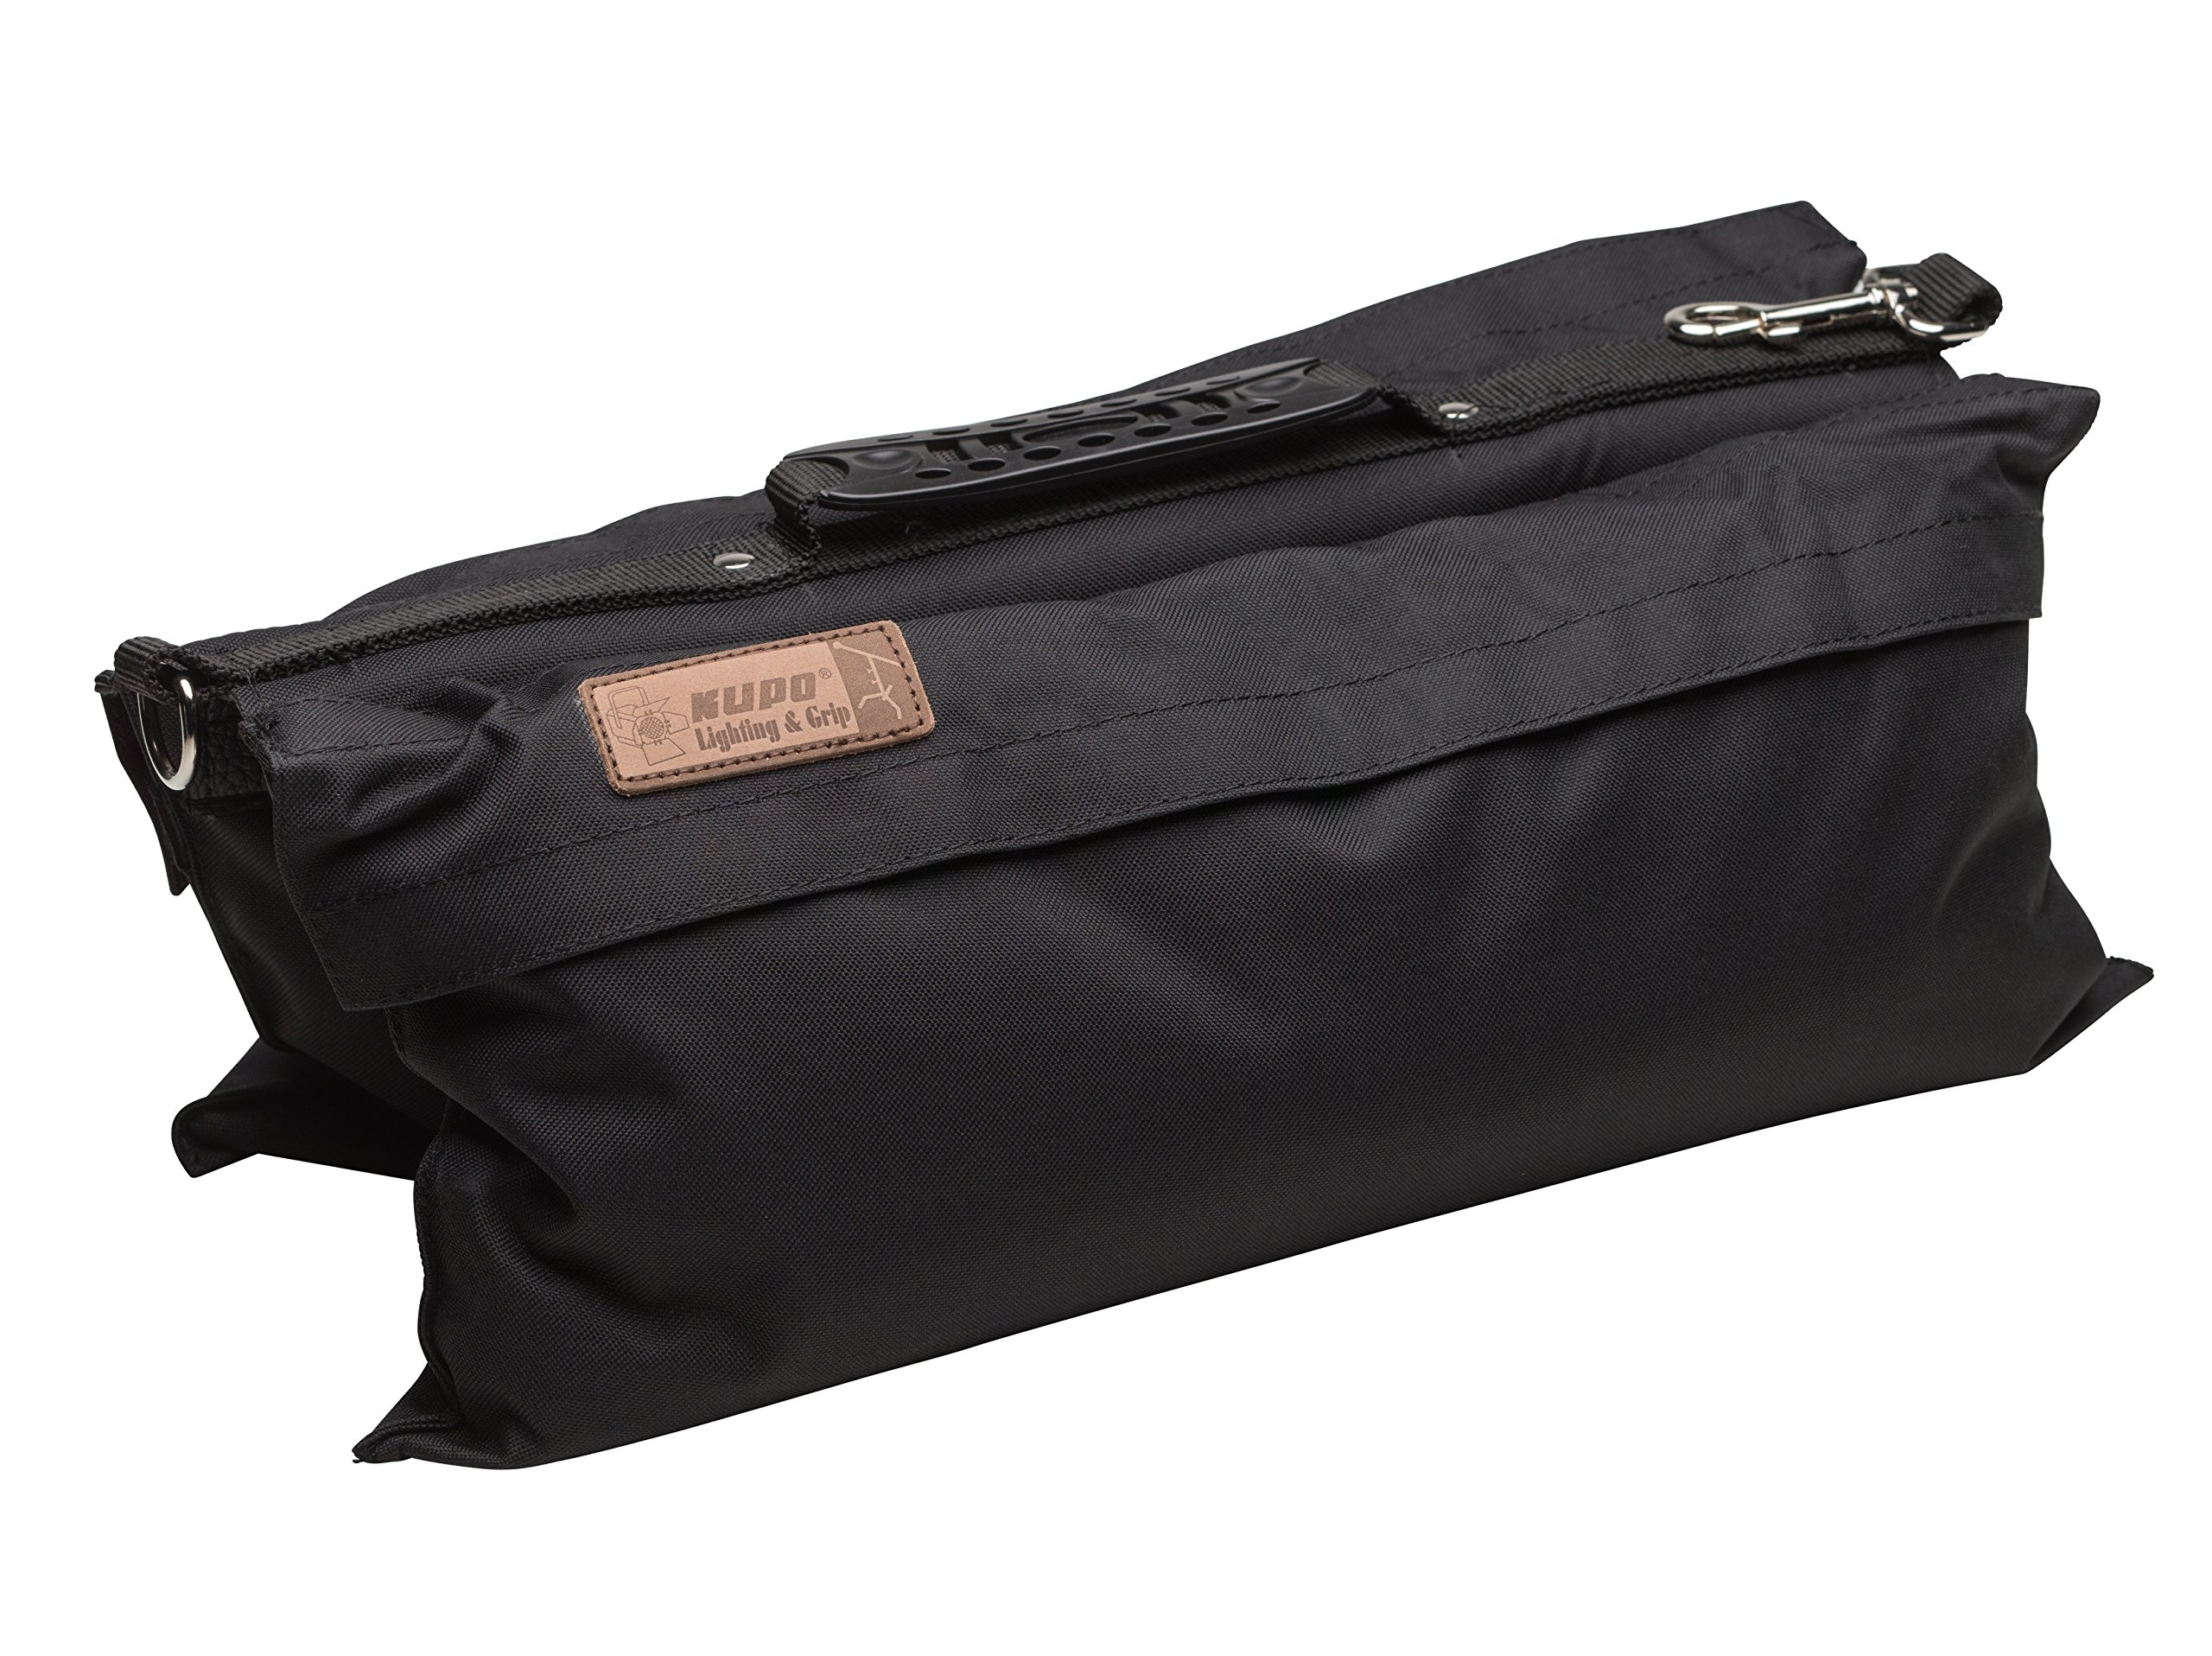 Kupo KG083411 Professional Sand Bag 22.4LBS (Black) by Kupo